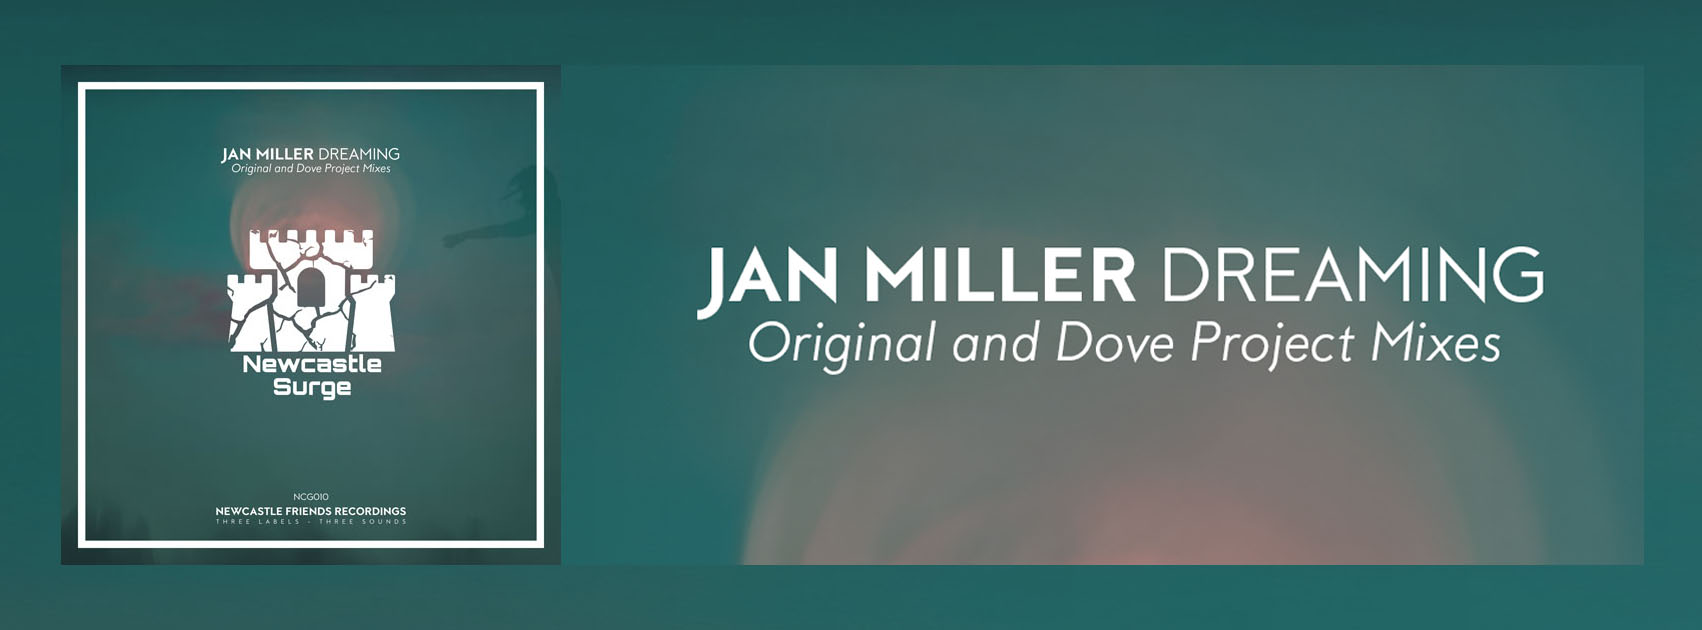 Jan Miller - Dreaming OUT NOW!